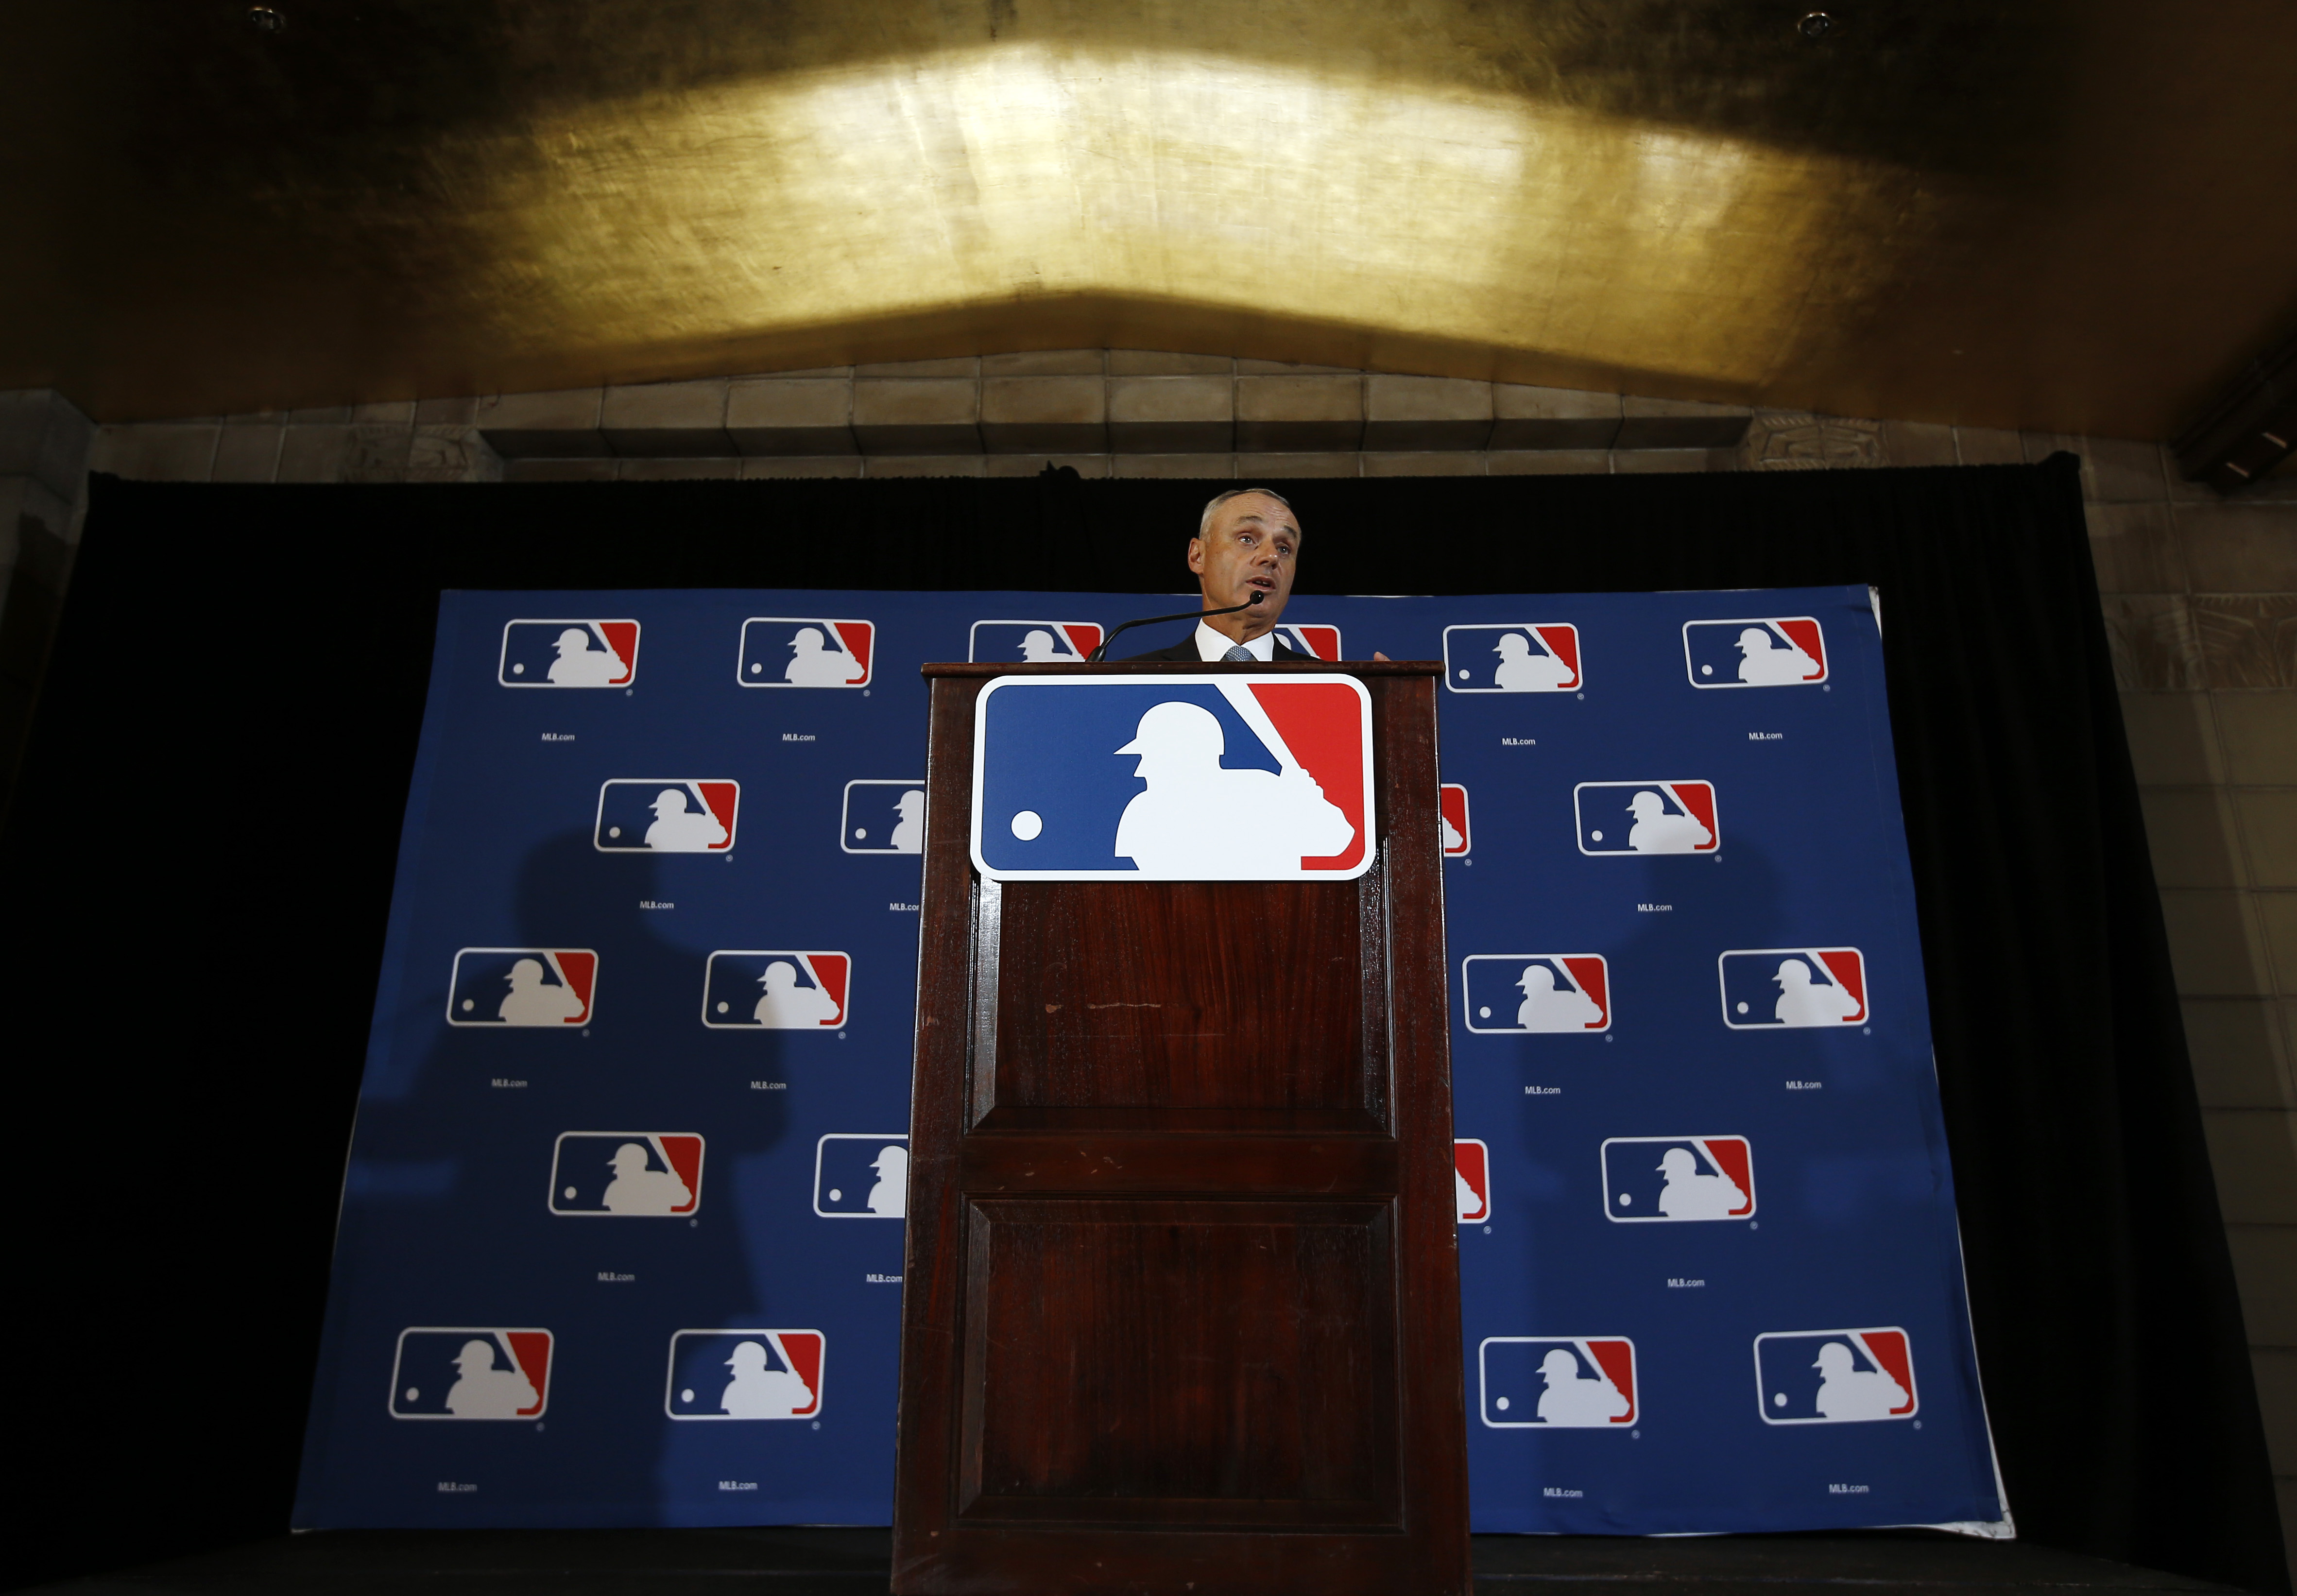 Major League Baseball Commissioner Rob Manfred answers a question during a news conference Monday, Feb. 22, 2016, in Phoenix. (AP Photo/Morry Gash)